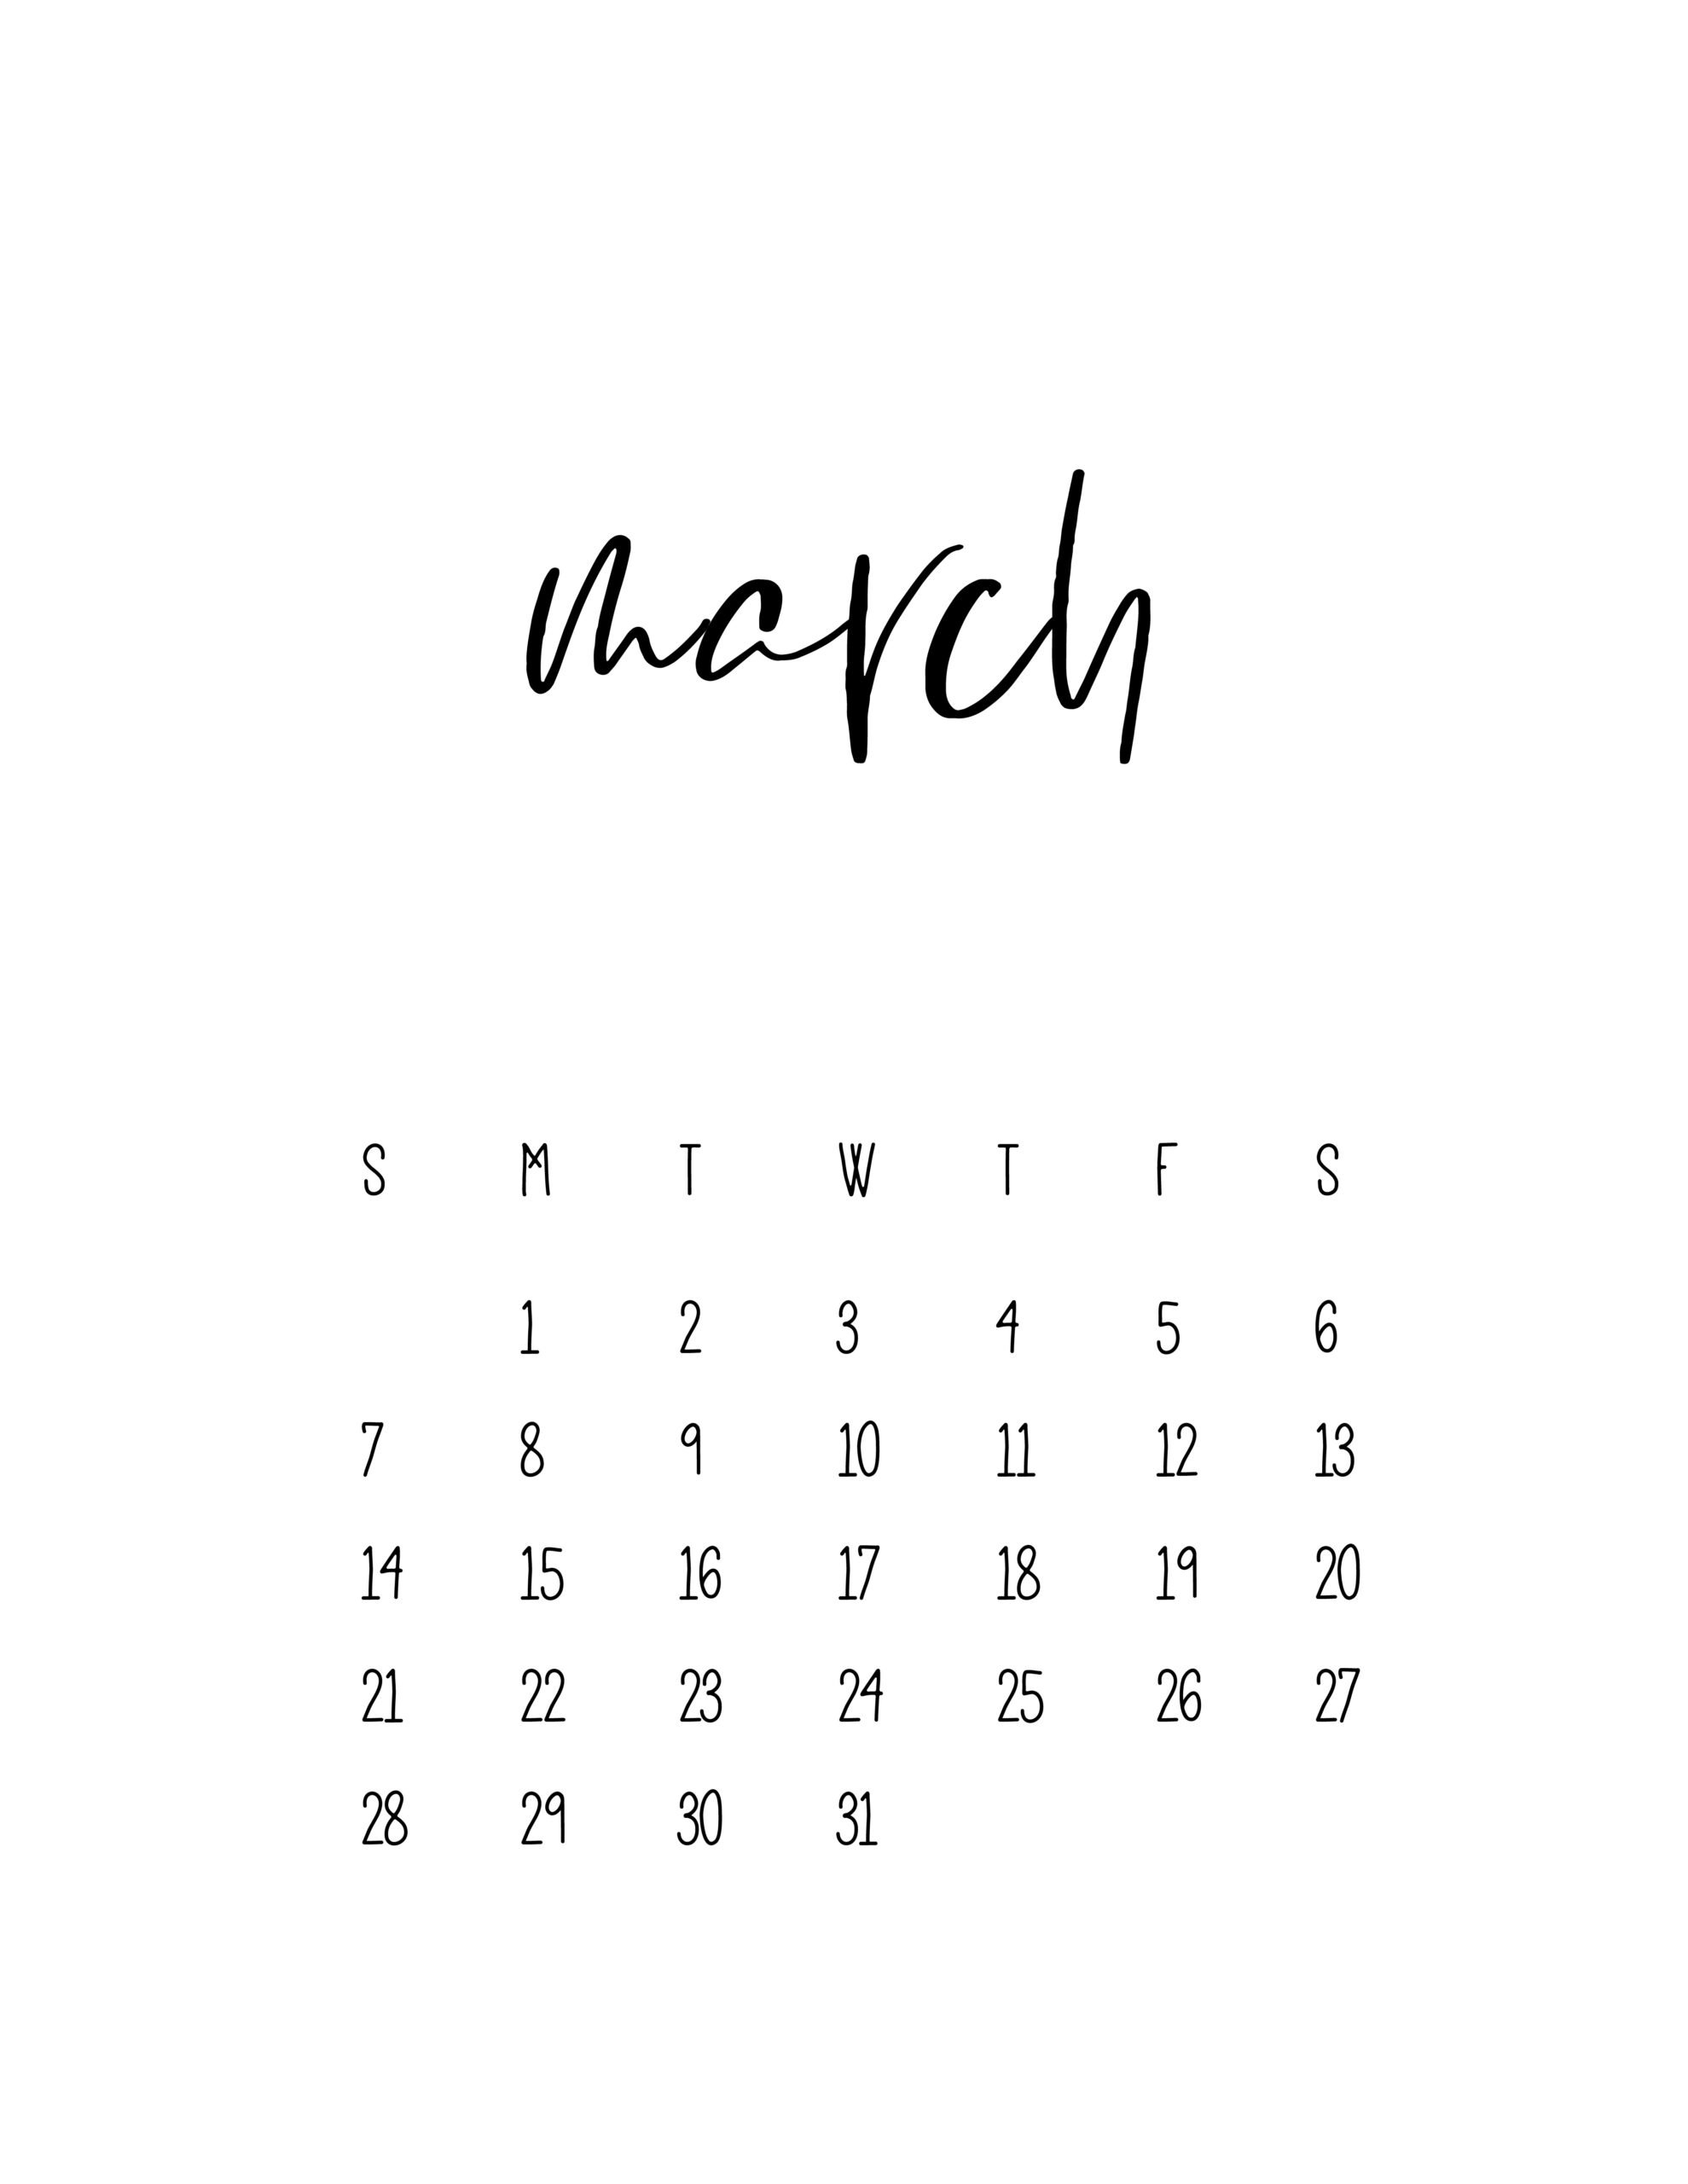 2021 Calendar Free Printable Template - World Of Printables inside What Year Calendar Matches 2021